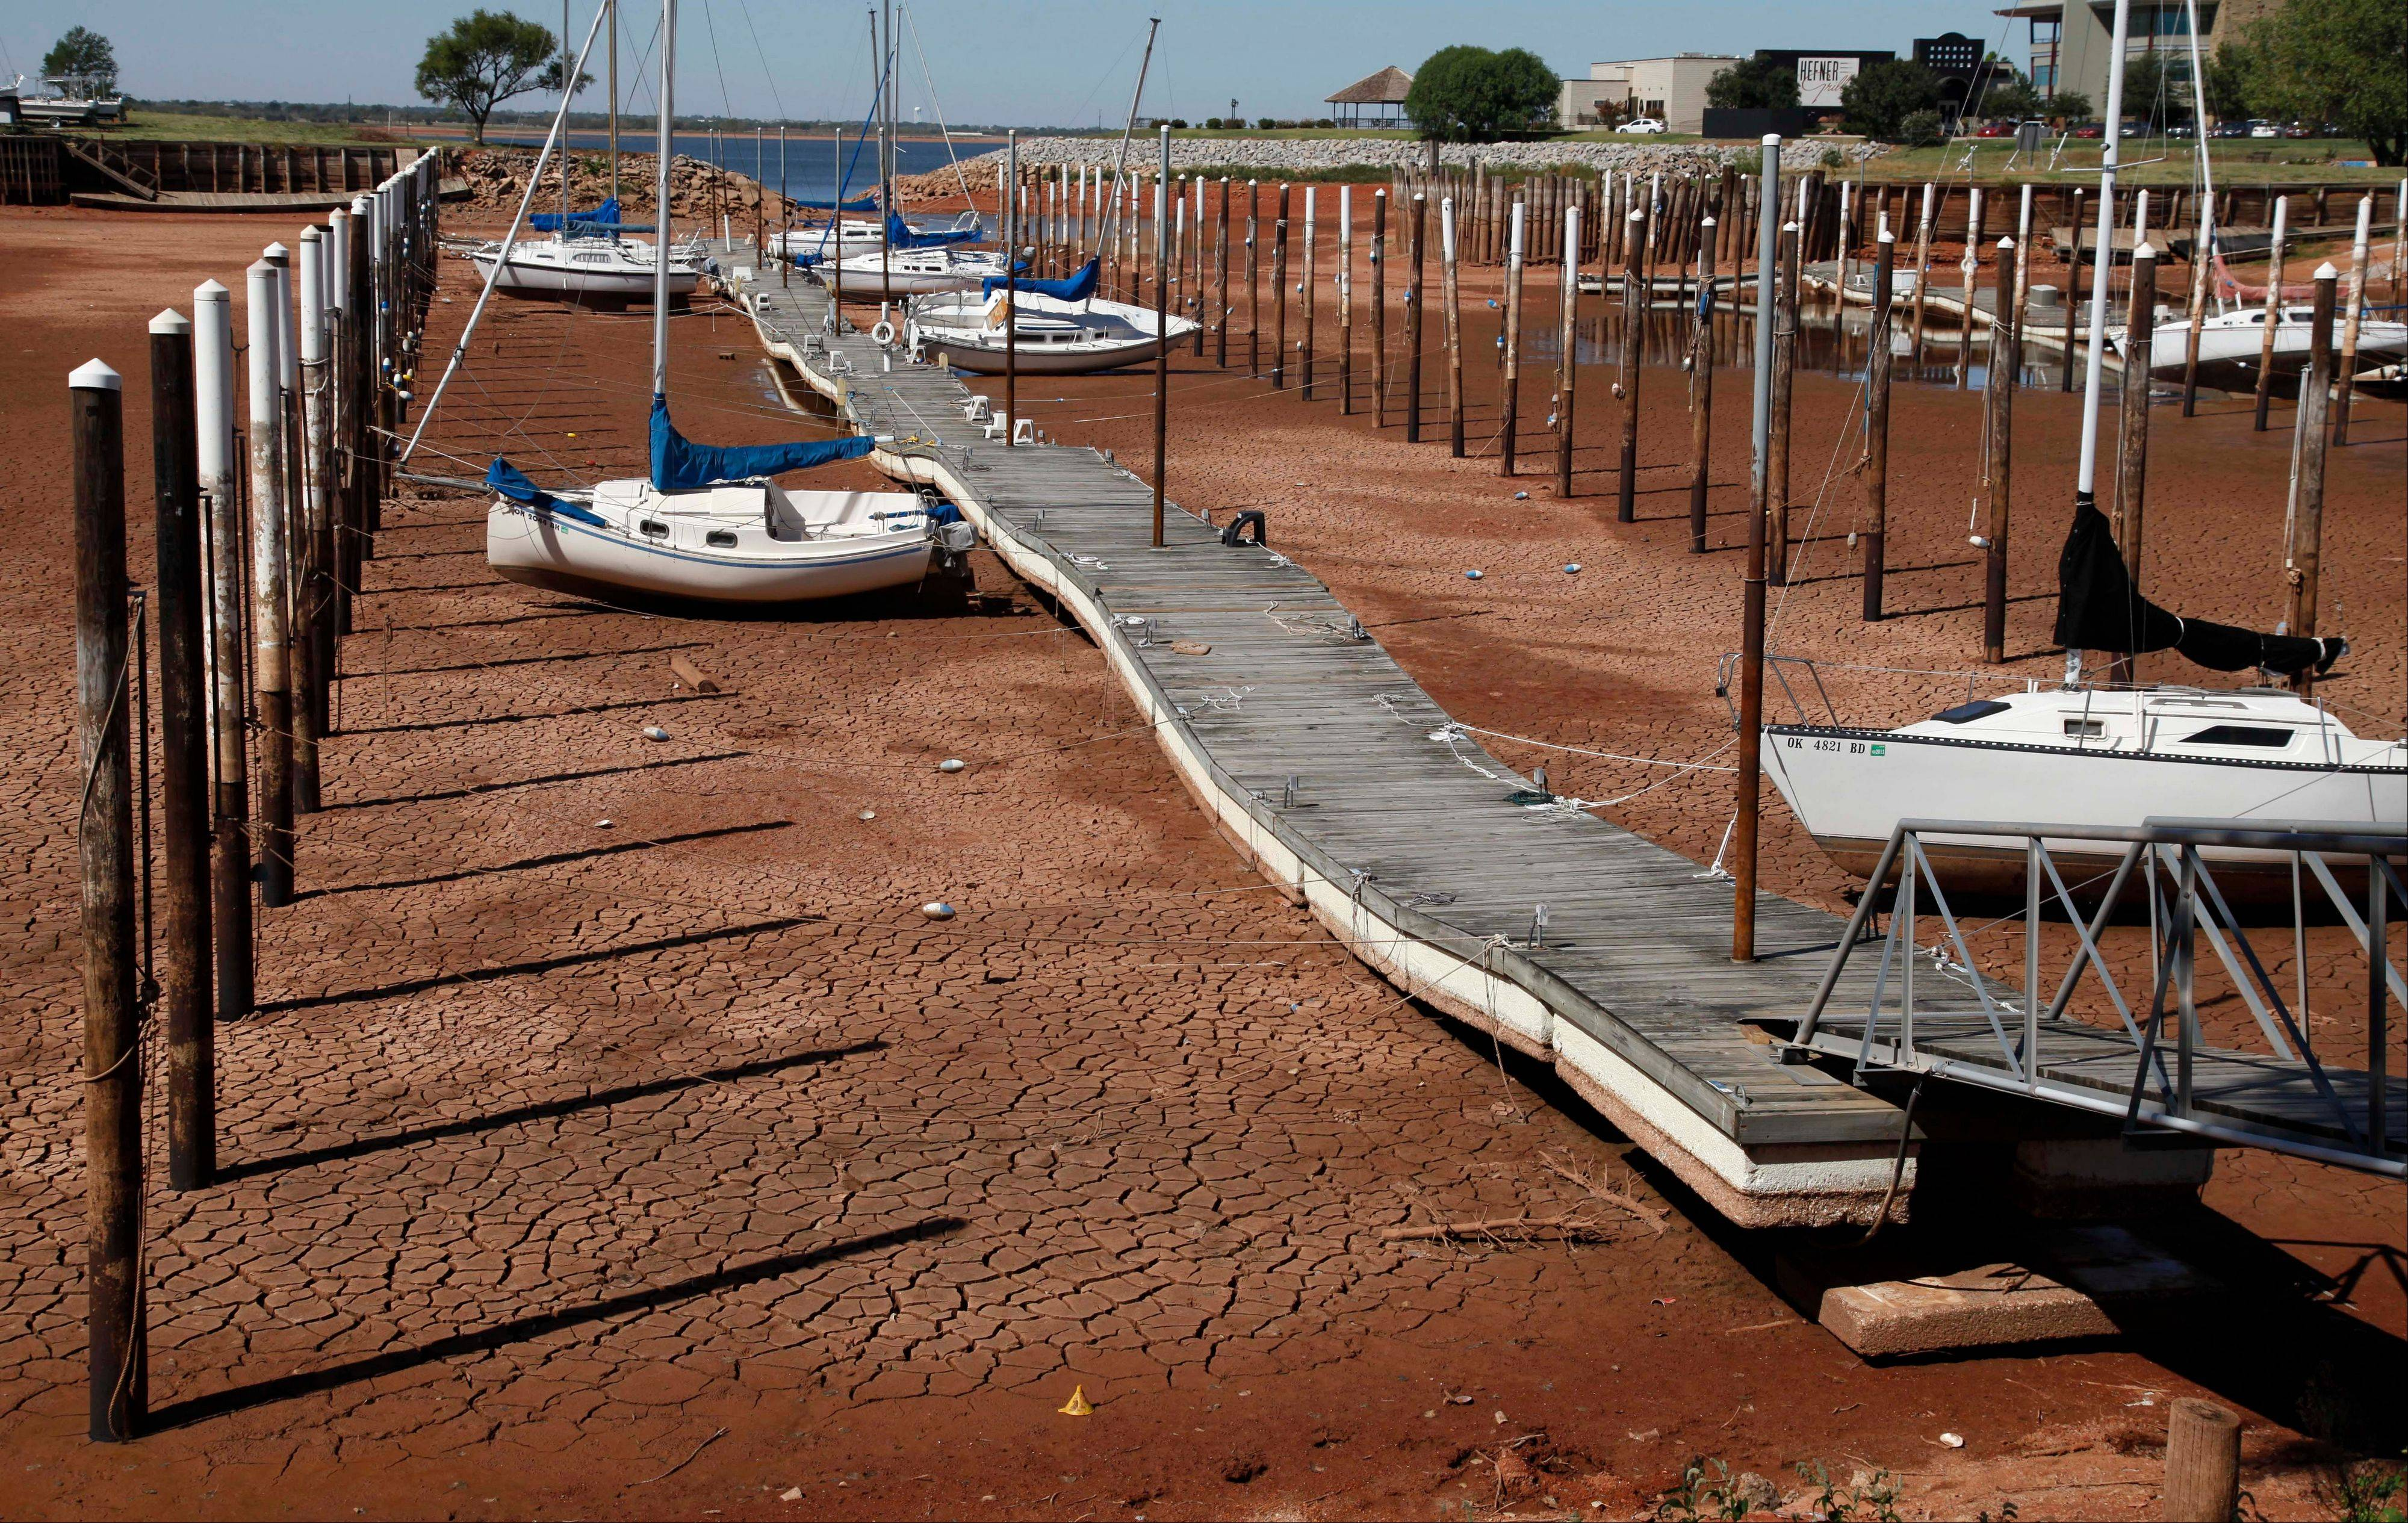 In this Sept. 30, 2011 file photo, Sailboats and a floating dock lie on the dry, cracked dirt in a harbor at Lake Hefner in Oklahoma City as drought continues to be a problem across the state. The relentless, weather-gone-crazy type of heat that has blistered the United States and other parts of the world in recent years is so rare and off-the-charts that it can't be anything but man-made global warming, a new statistical analysis from a top government scientist says.